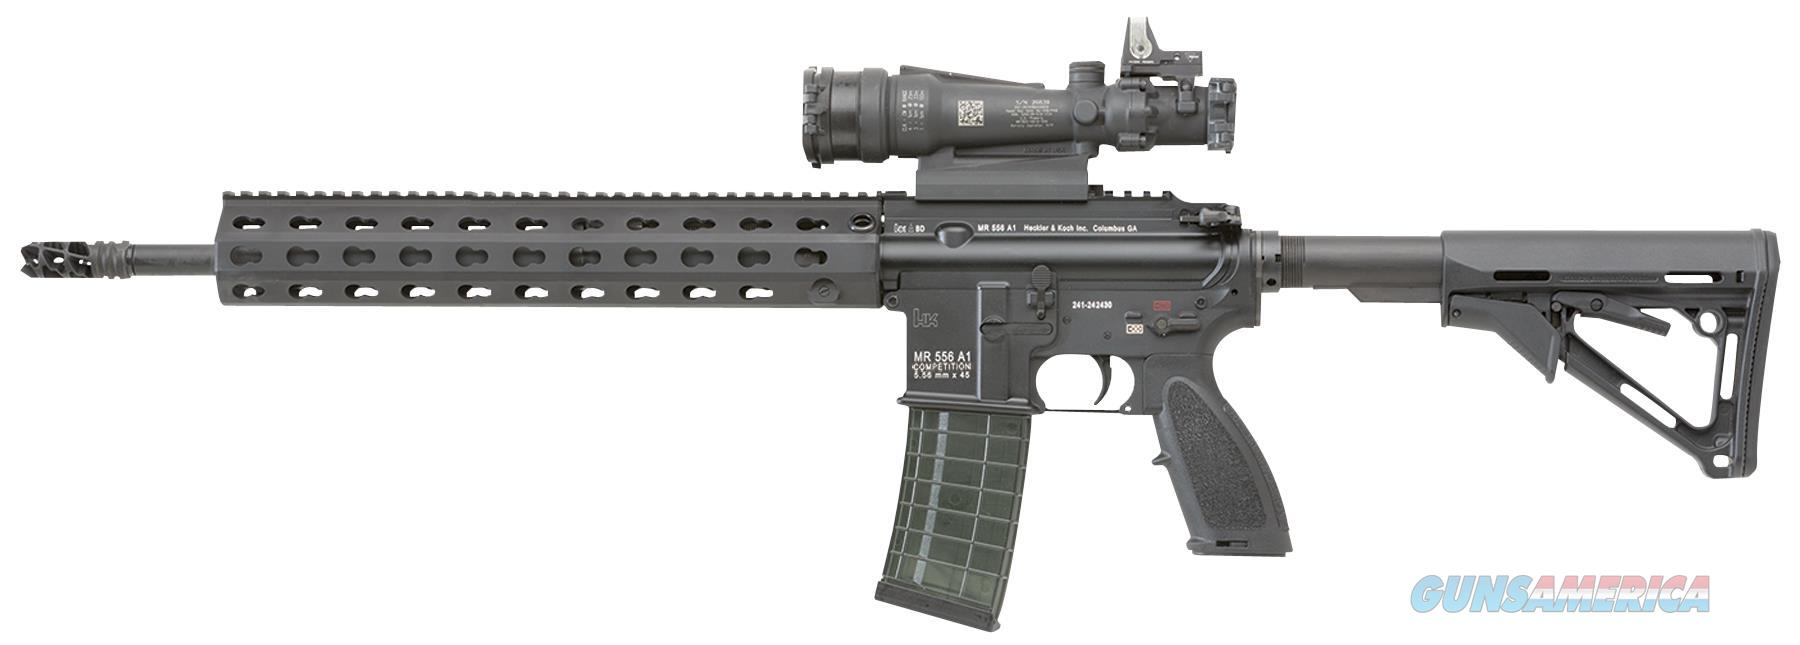 "Heckler & Koch Cr556a1 Mr556 A1 Competition Semi-Automatic 223 Remington/5.56 Nato 16.5"" Mb 30+1 Or Magpul Ctr Black Stk Black CR556-A1  Guns > Rifles > H Misc Rifles"